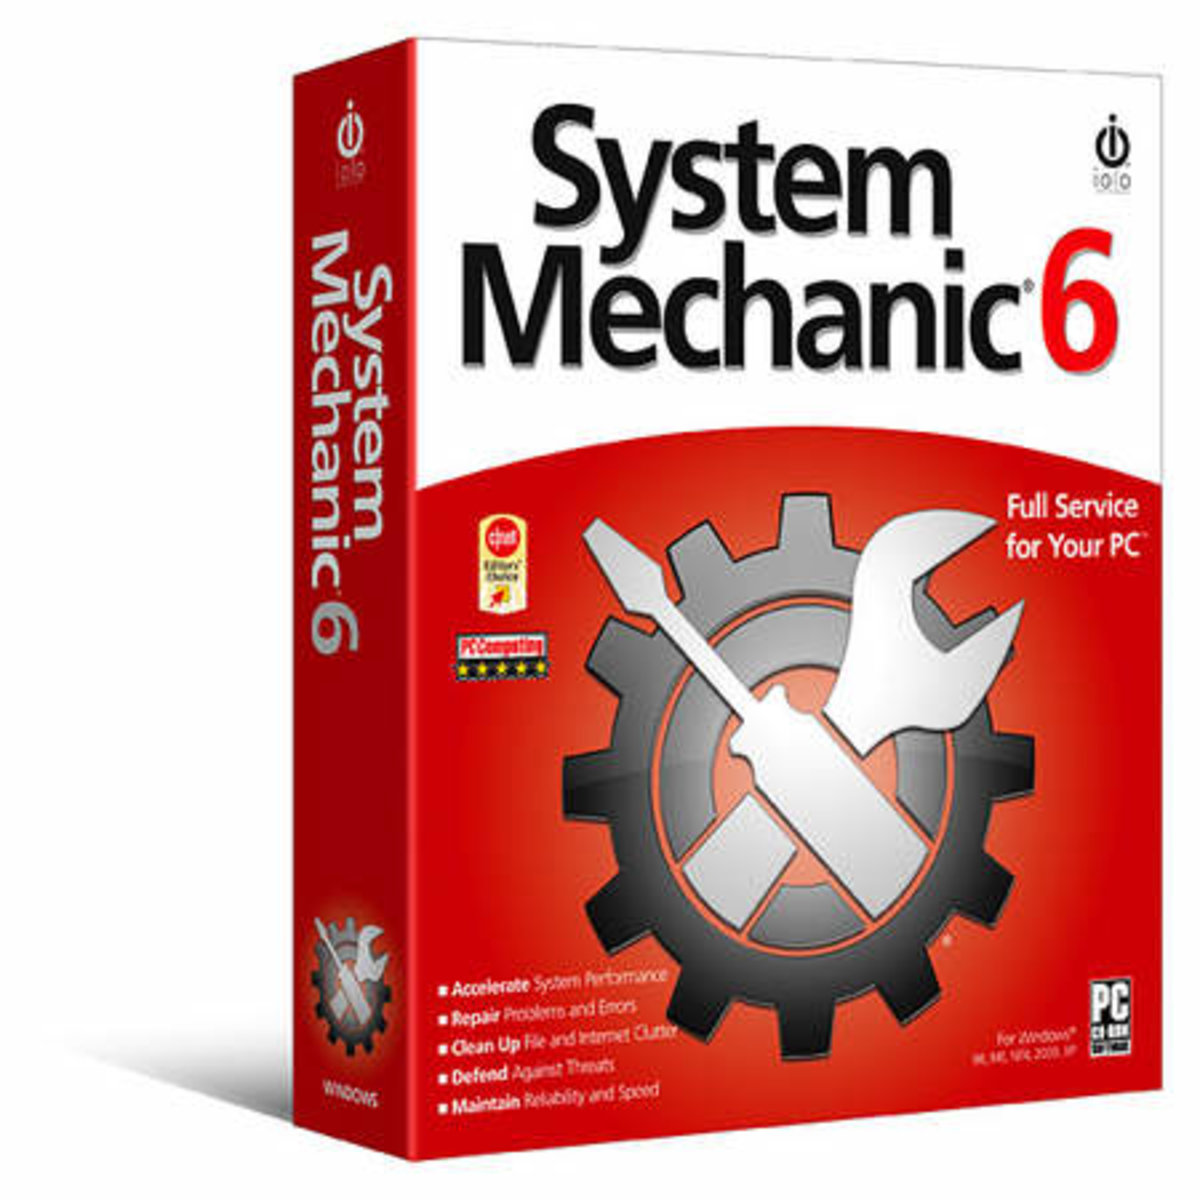 System Mechanic Iolo System Mechanic 6 Pro